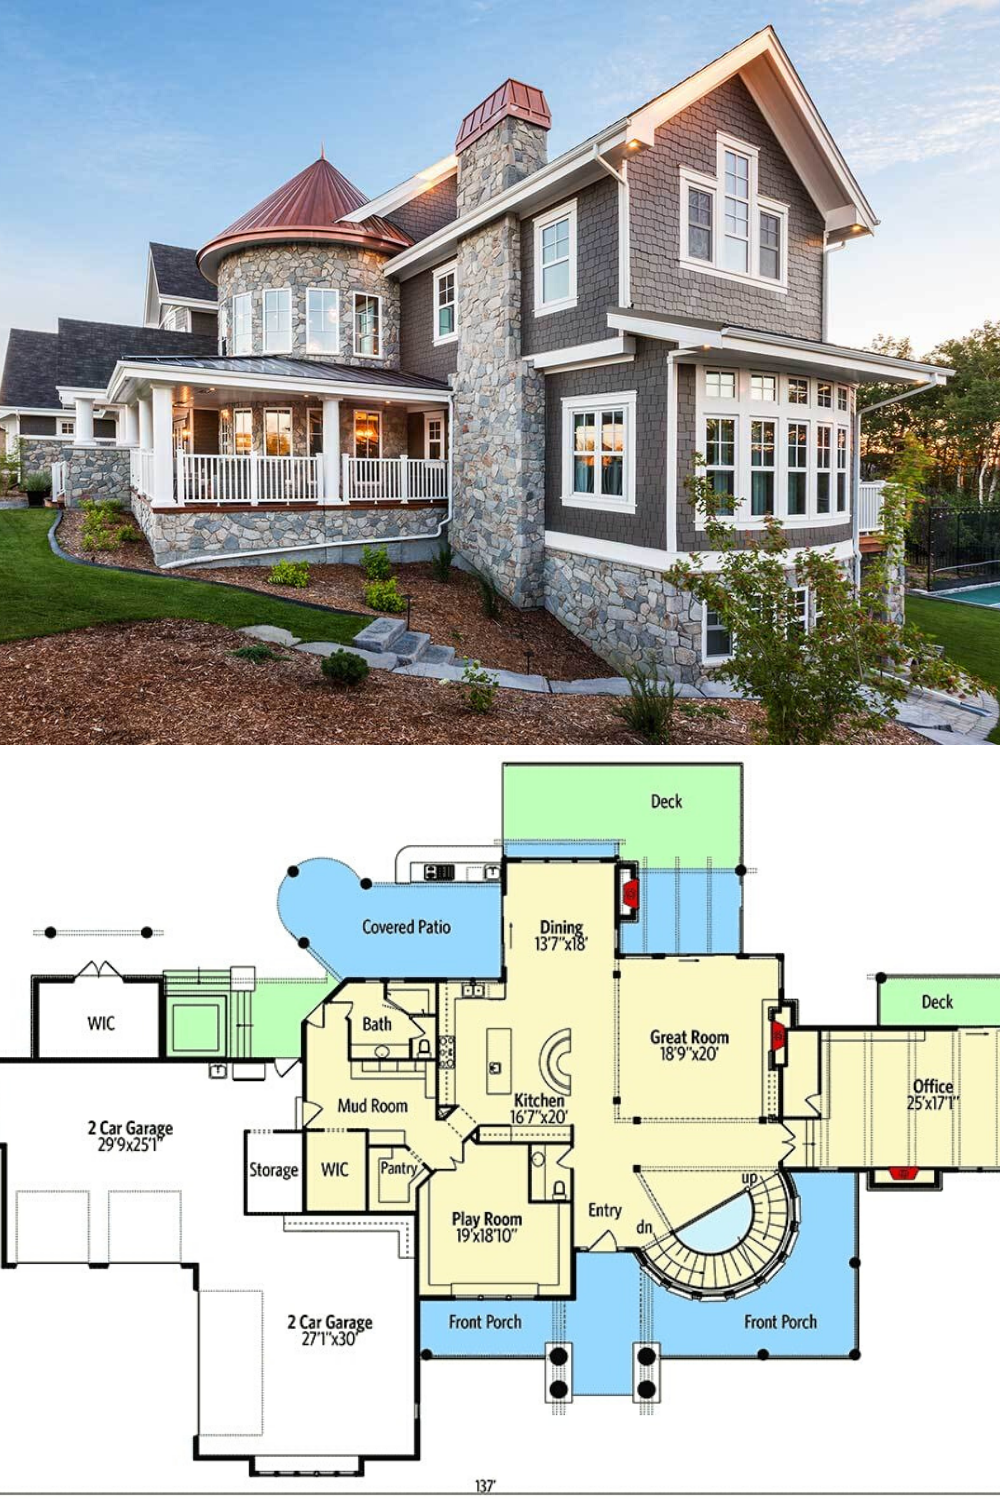 4 Bedroom Two Story Grand Shingle Style Home Floor Plan Shingle Style Homes Shingle Style House Floor Plans